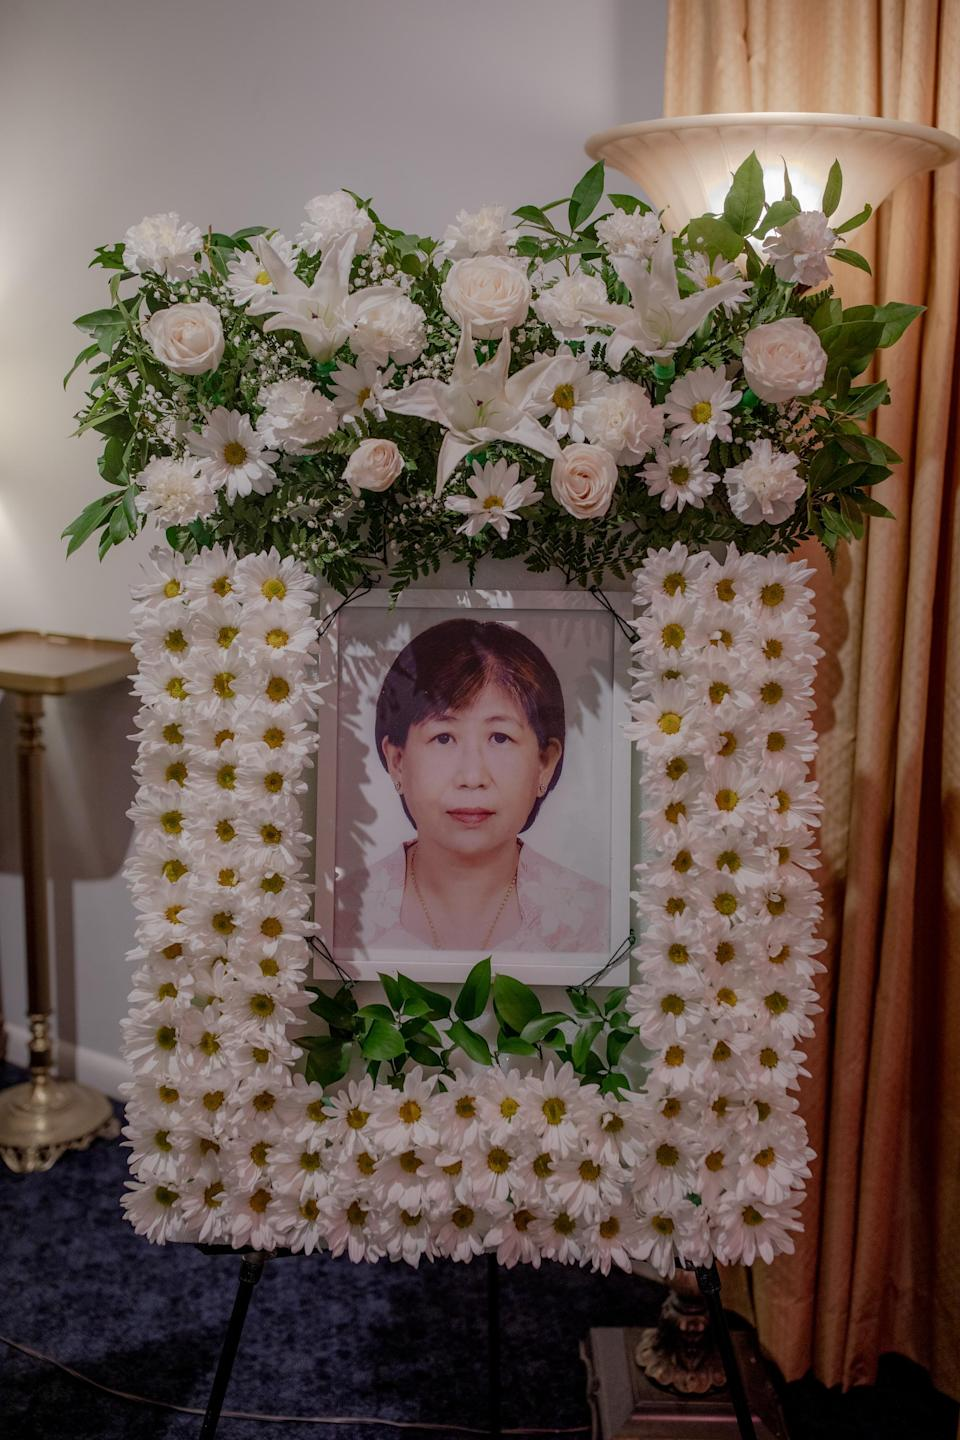 A memorial to Than Than Htwe, an immigrant from Myanmar who was fatally injured in an attack in the New York subway system, at a funeral home in Brooklyn, August 3, 2021. (Natalie Keyssar/The New York Times)